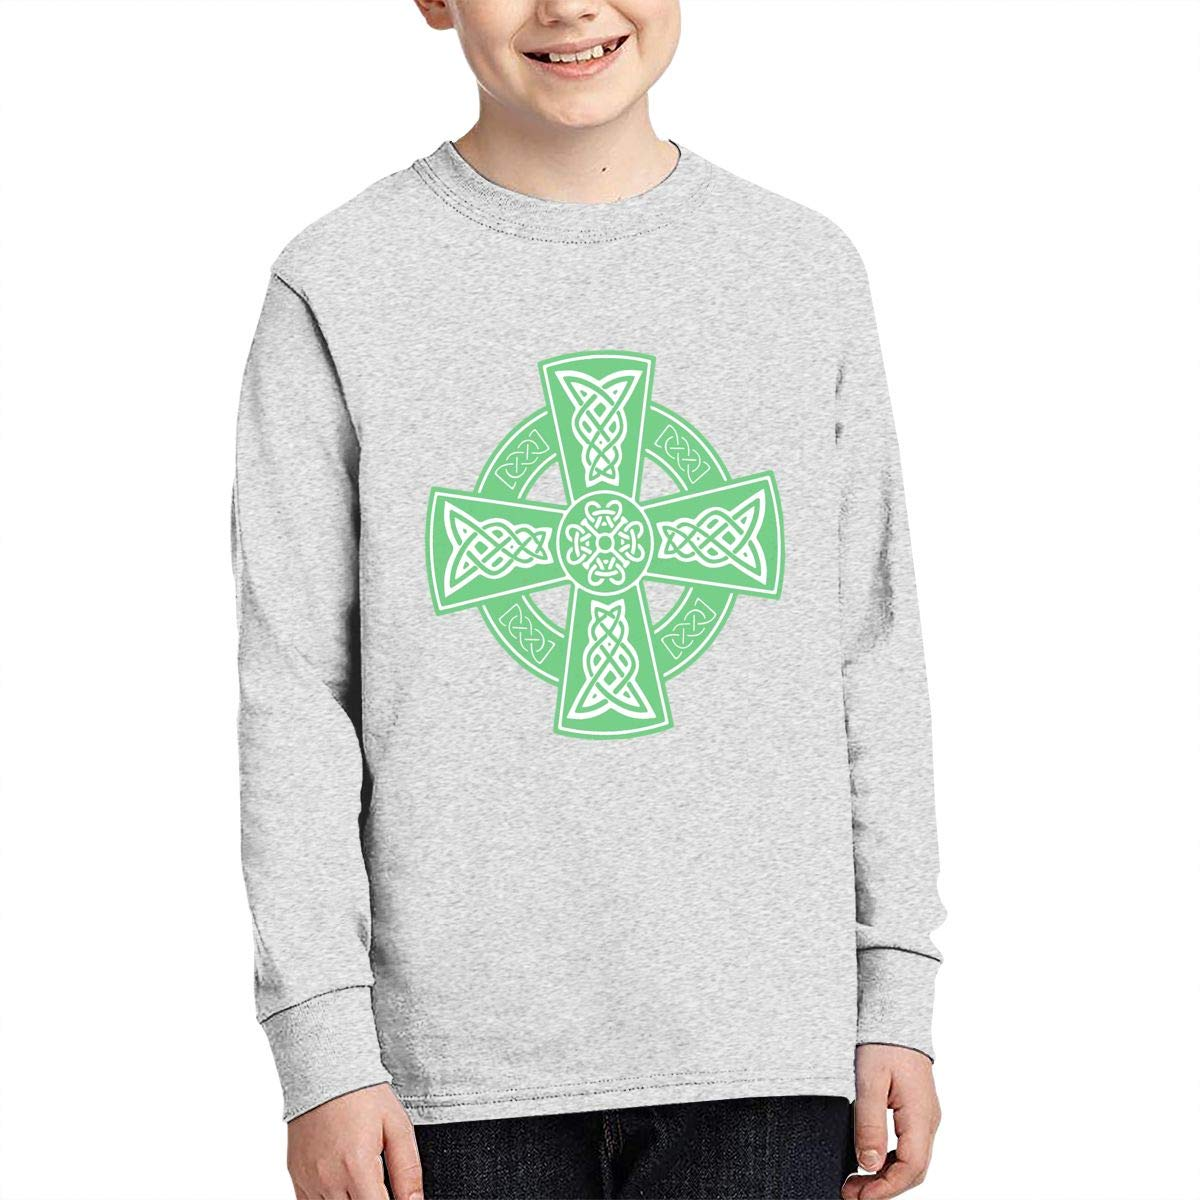 Celtic Cross Ancient Celtic Symbols Juvenile Unisex Cotton Long Sleeve Round Neck Sweatshirt